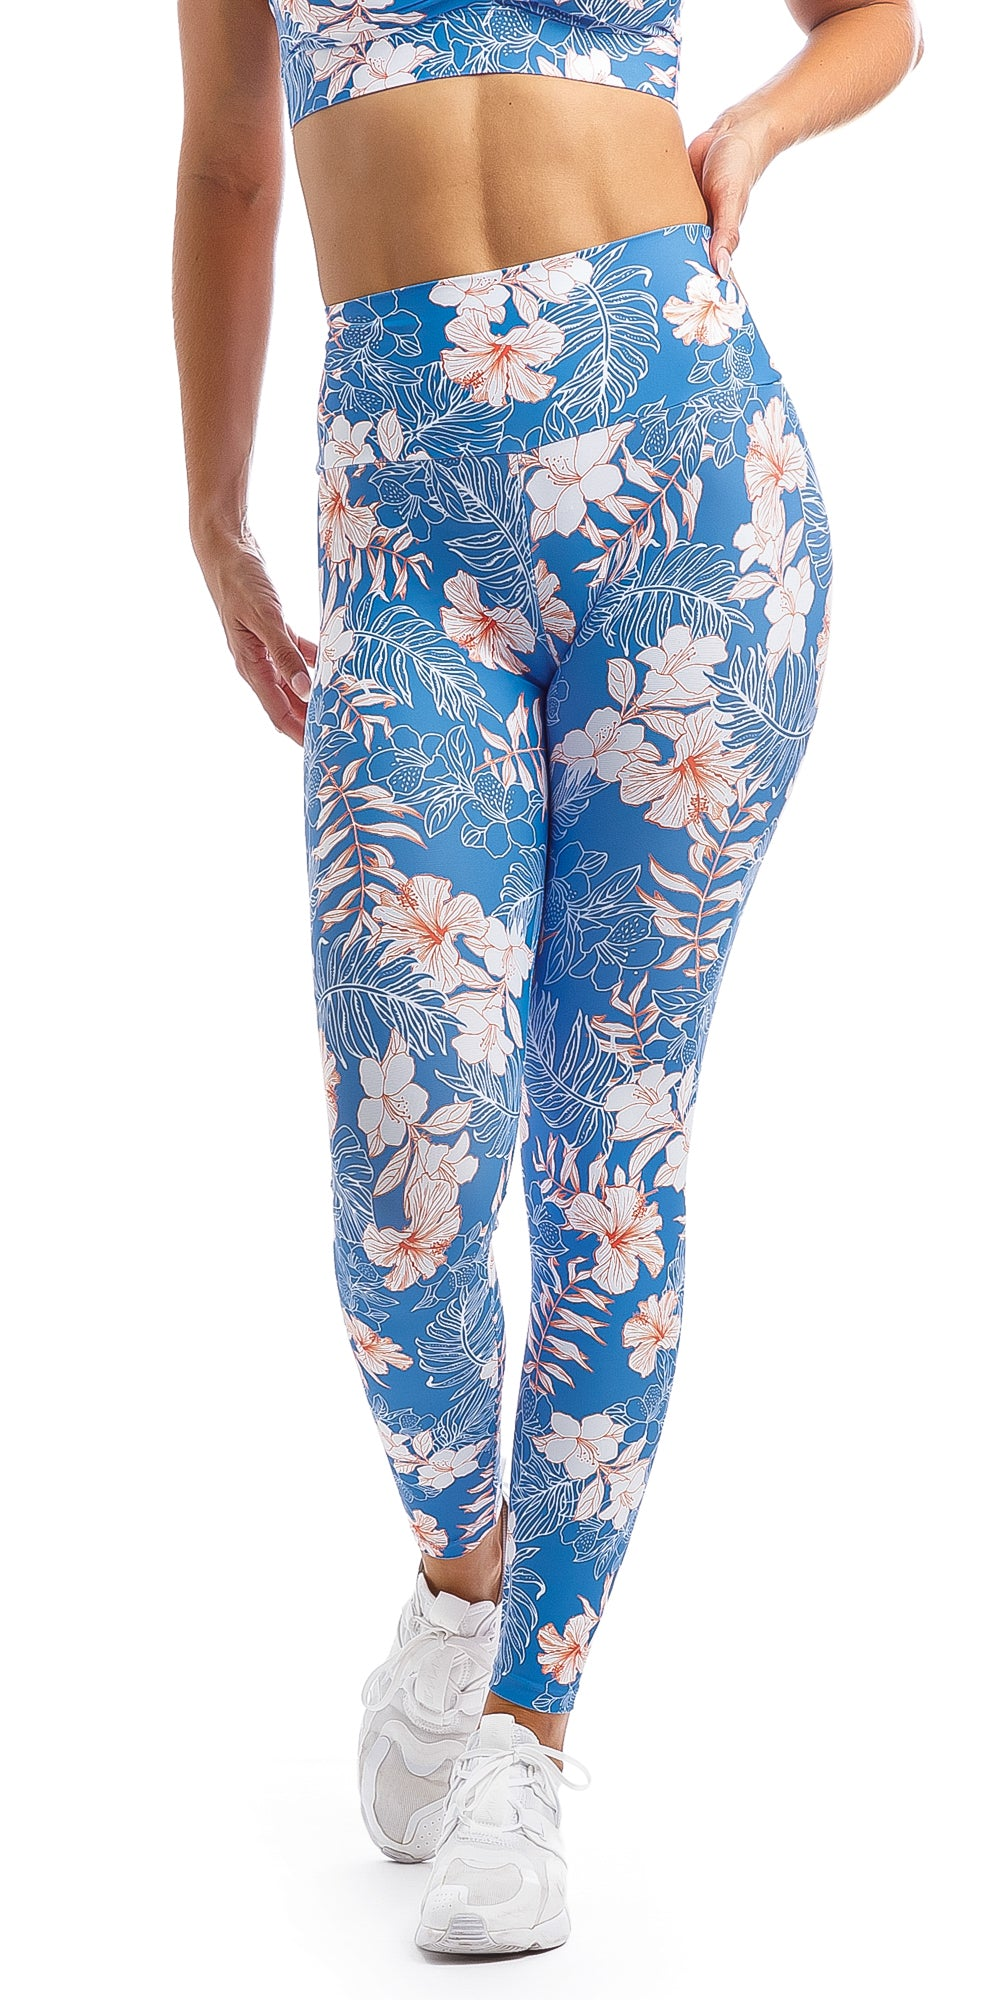 Lady with hand on hip wearing blue, white, pink floral Hibiscus Kiss print ultra high waist leggings & matching infinity bra